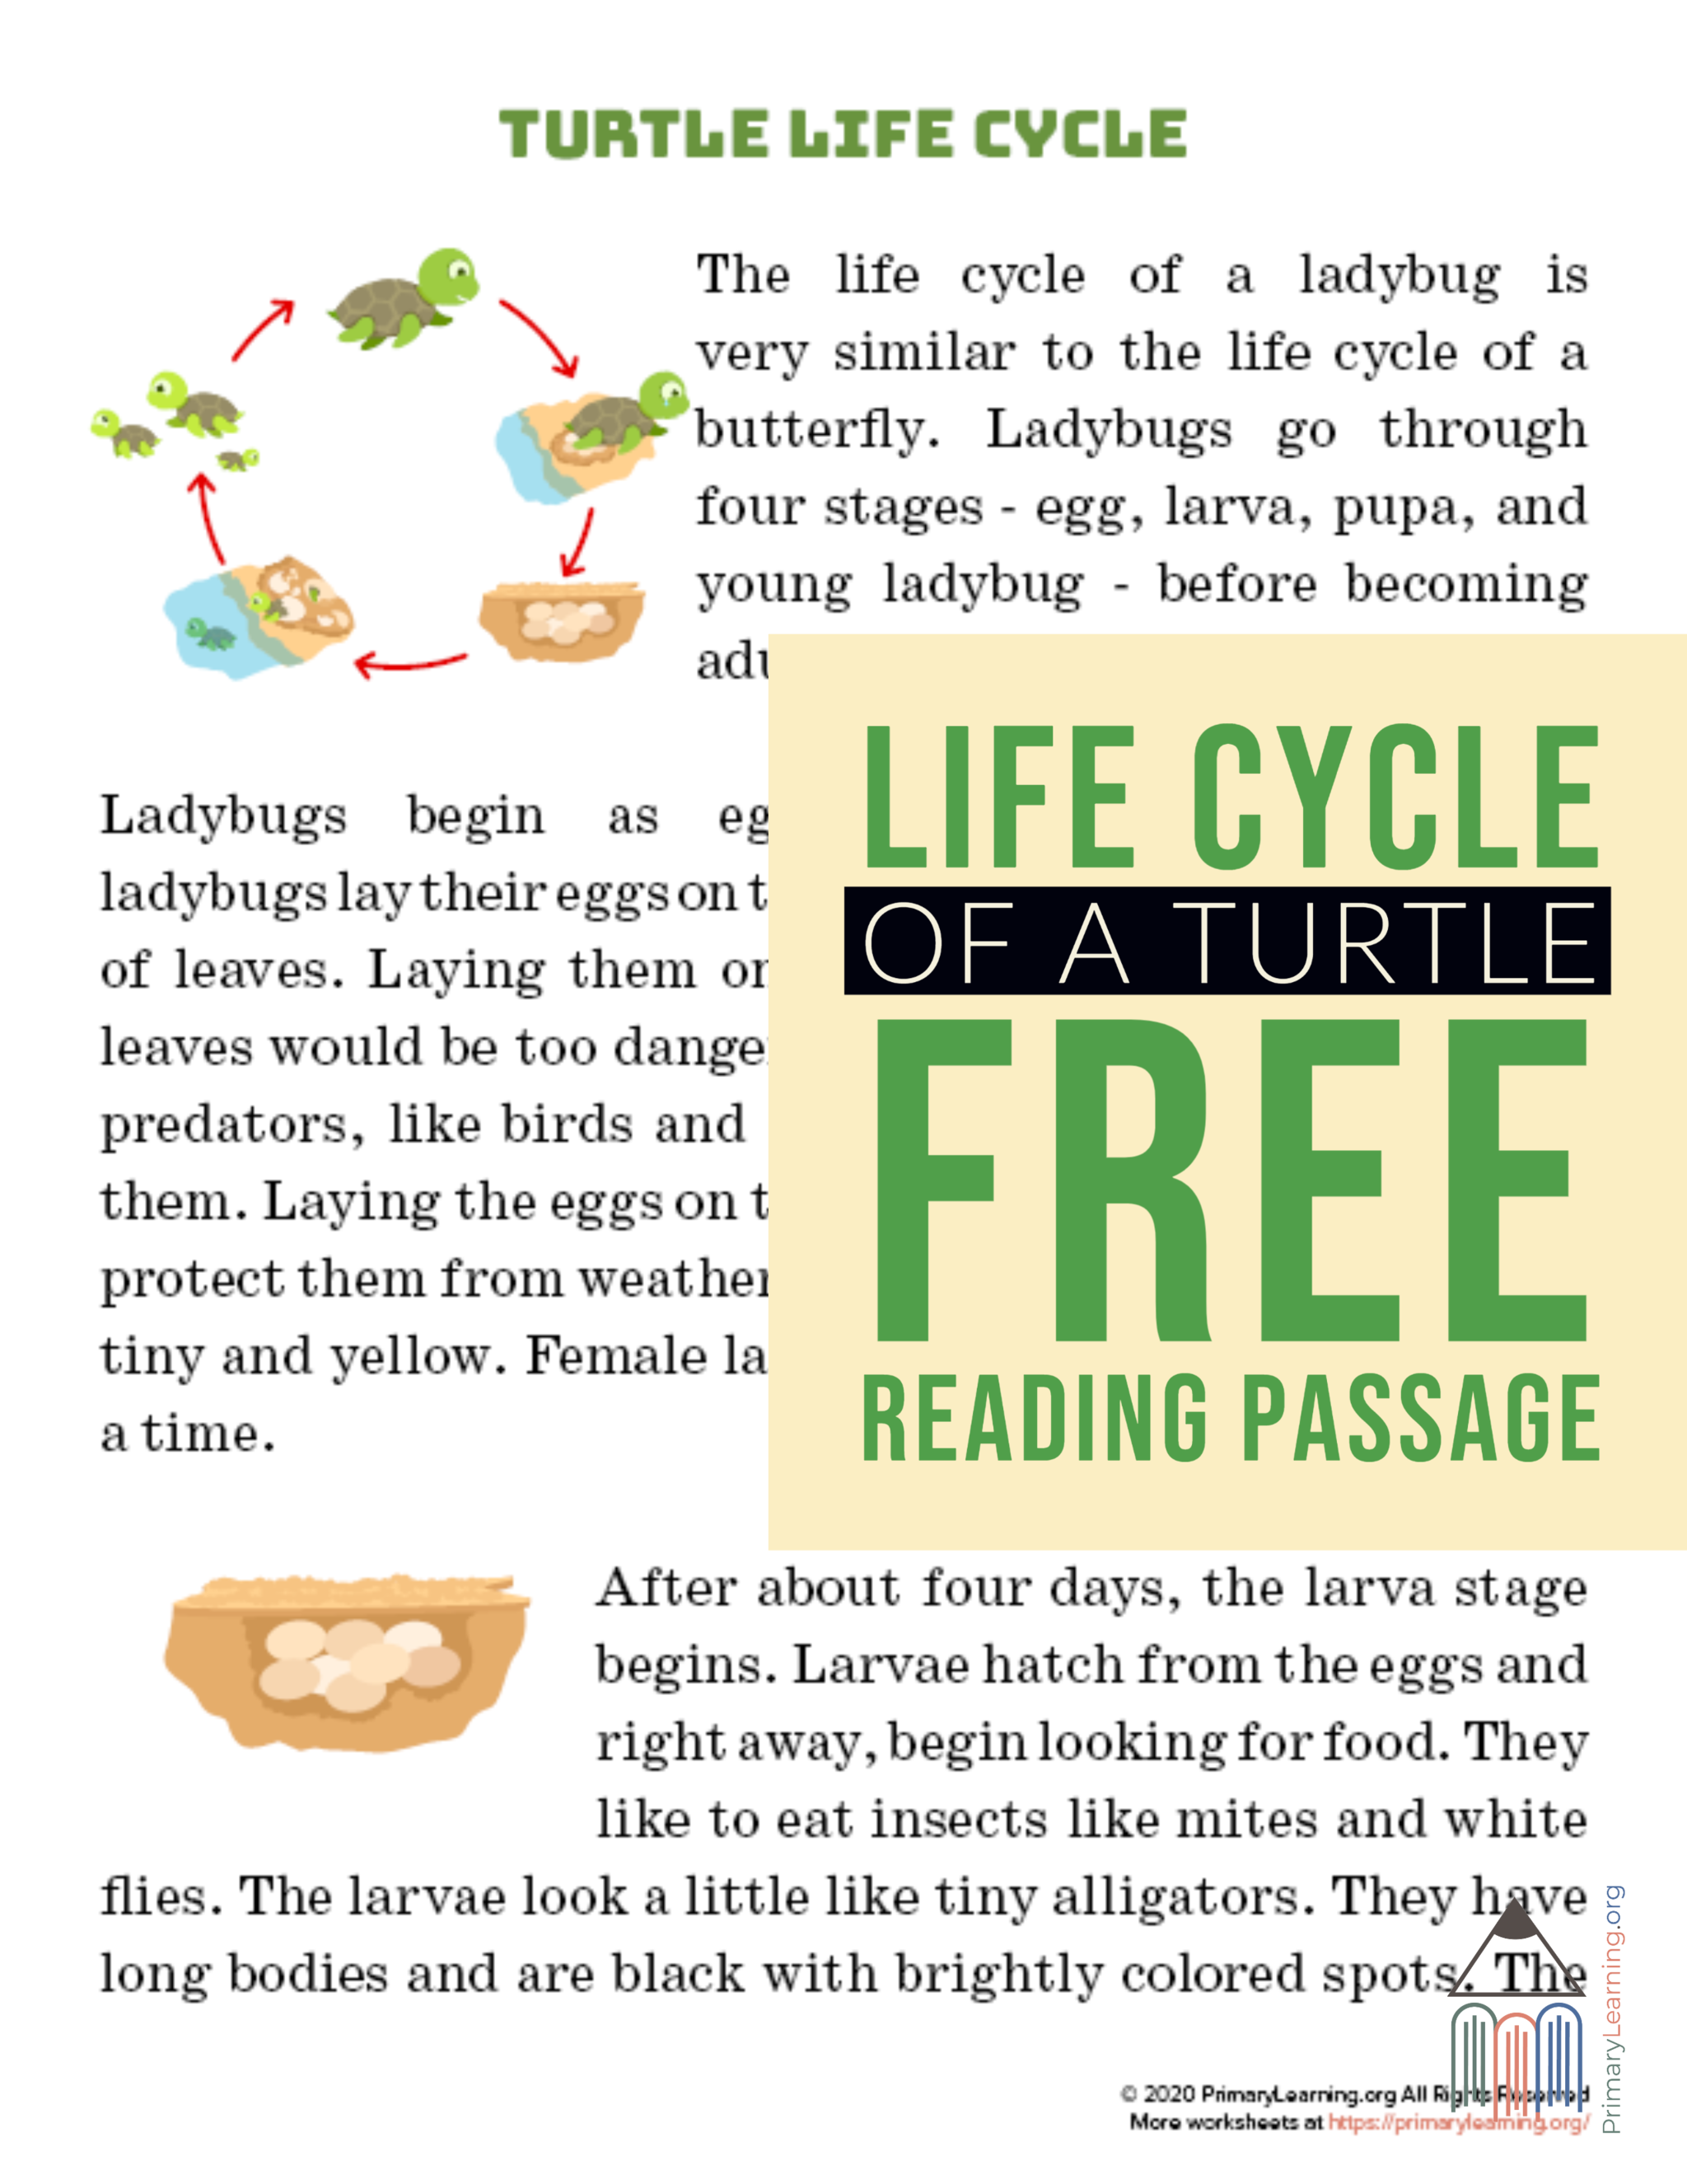 Turtle Life Cycle Article In